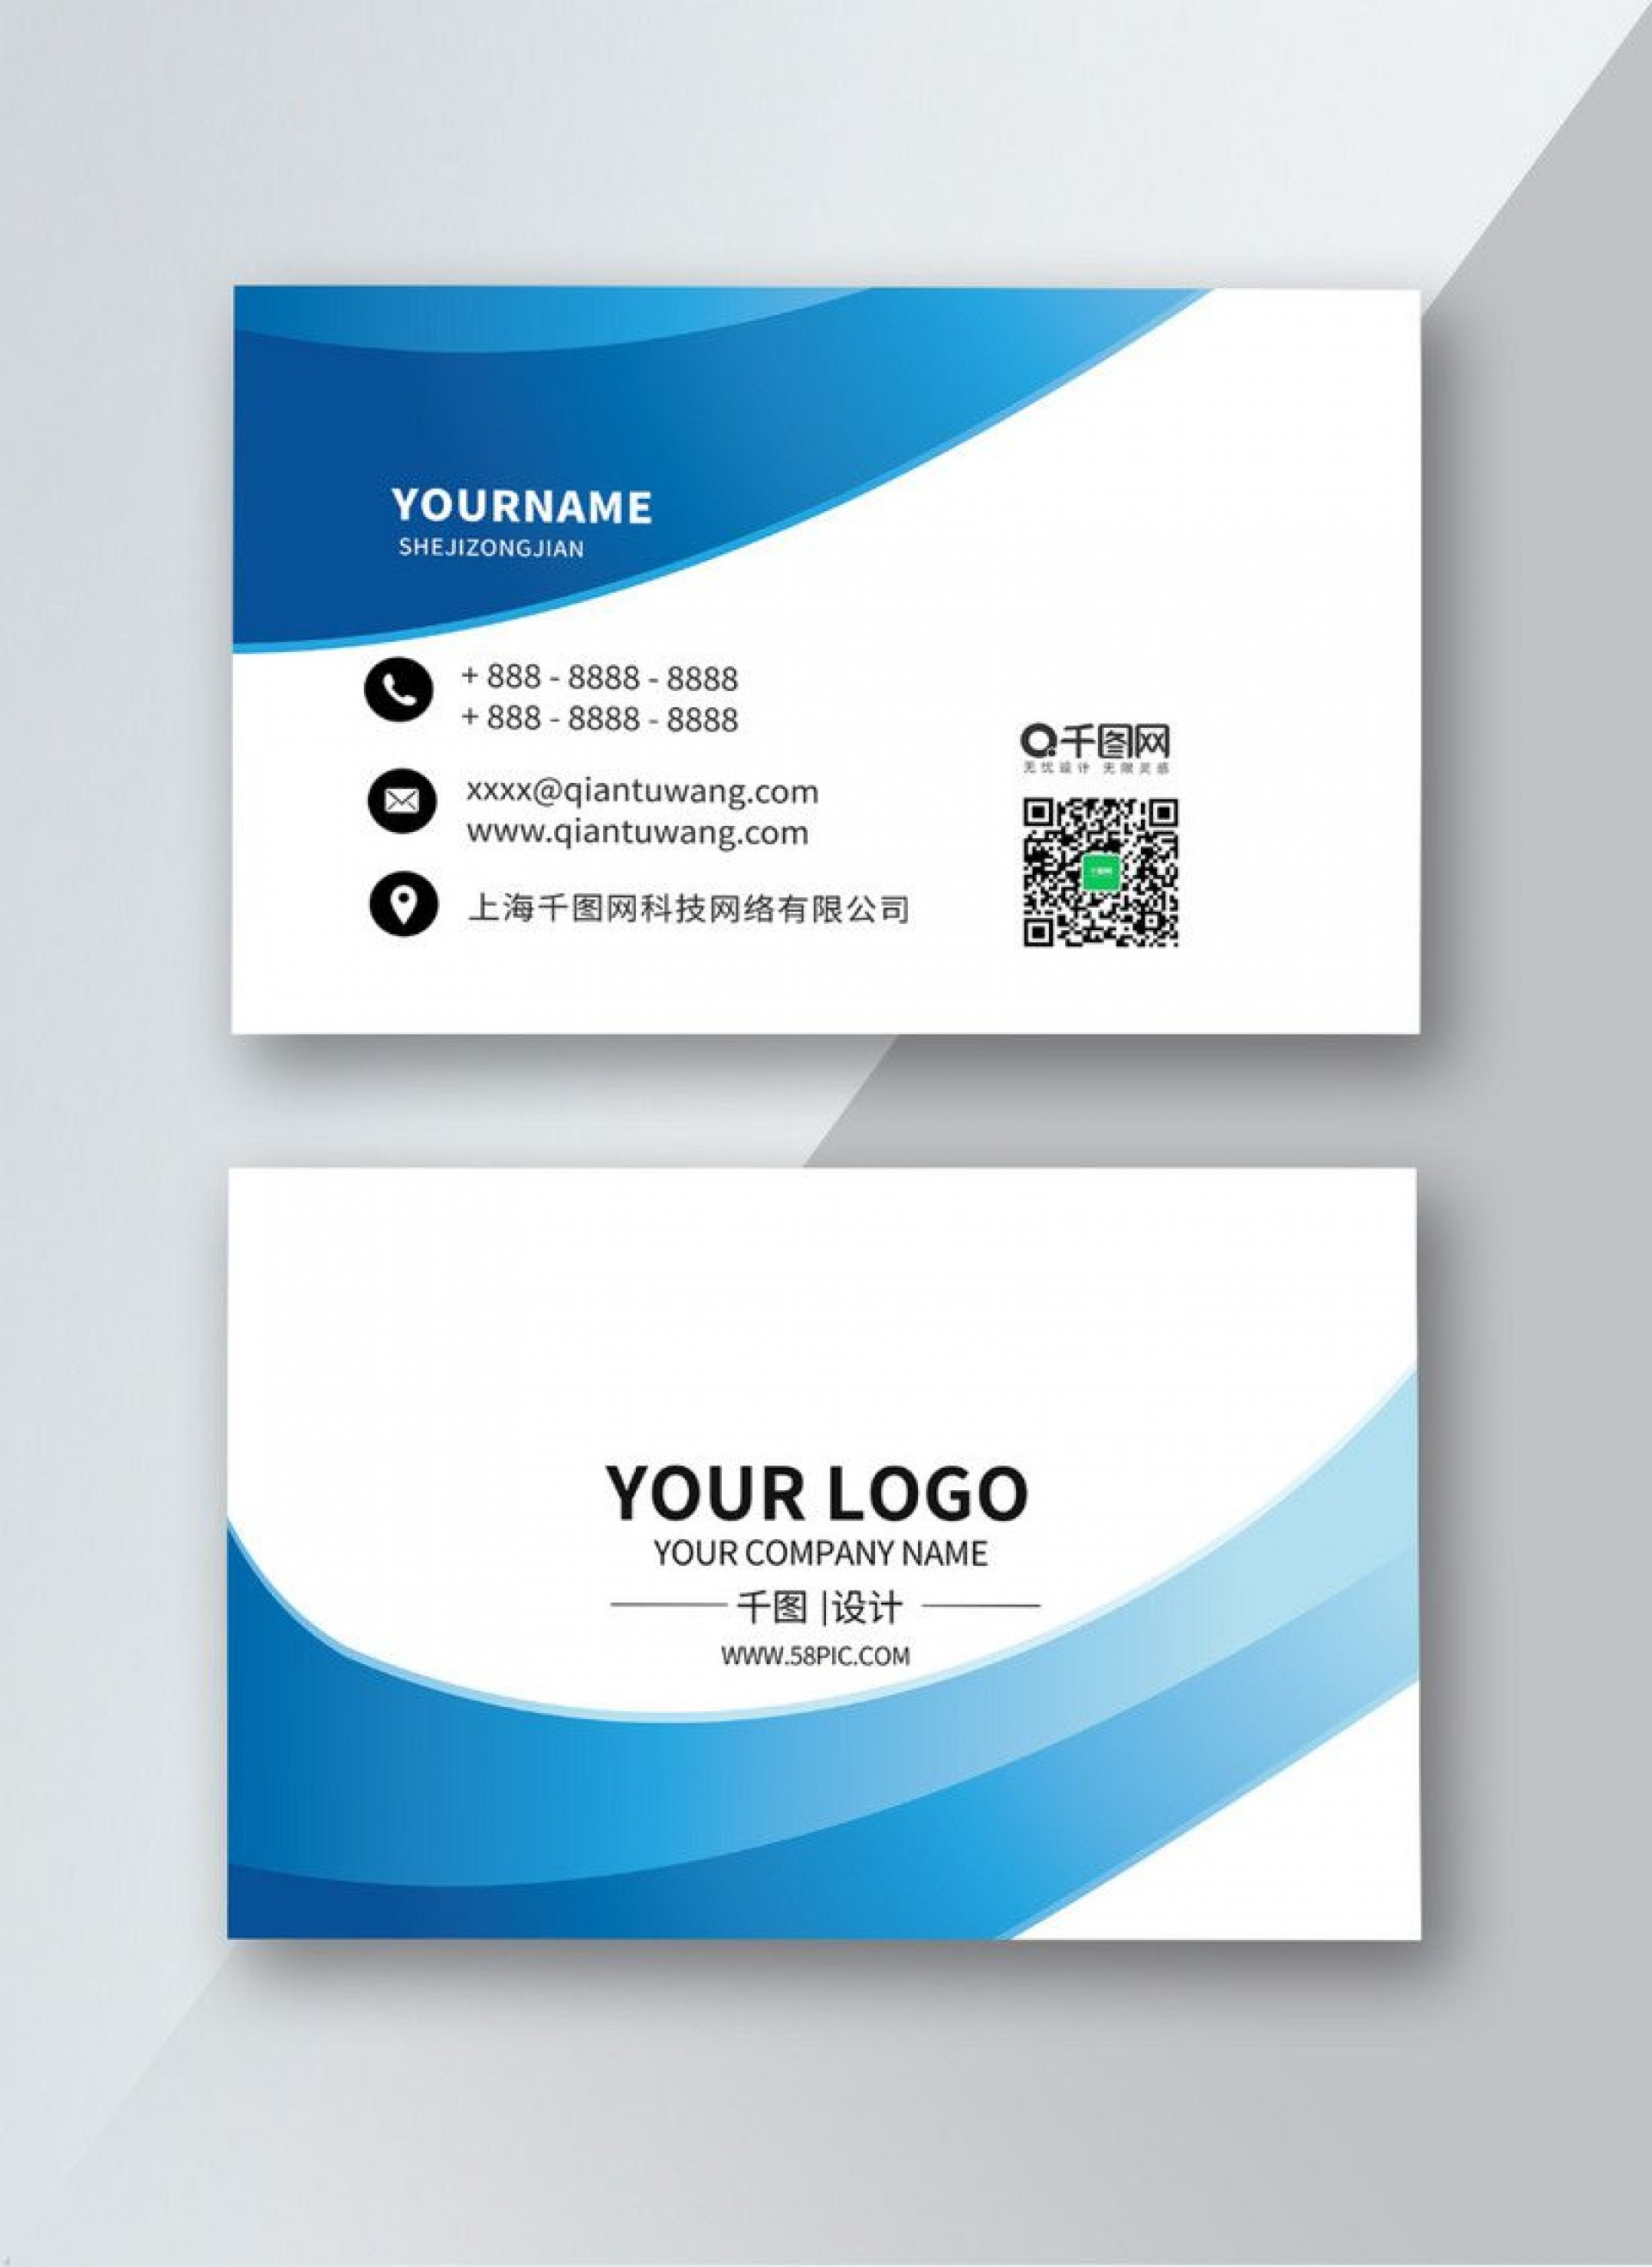 003 Sensational Free Download Busines Card Template High Resolution  For Microsoft Publisher Photoshop Powerpoint1920